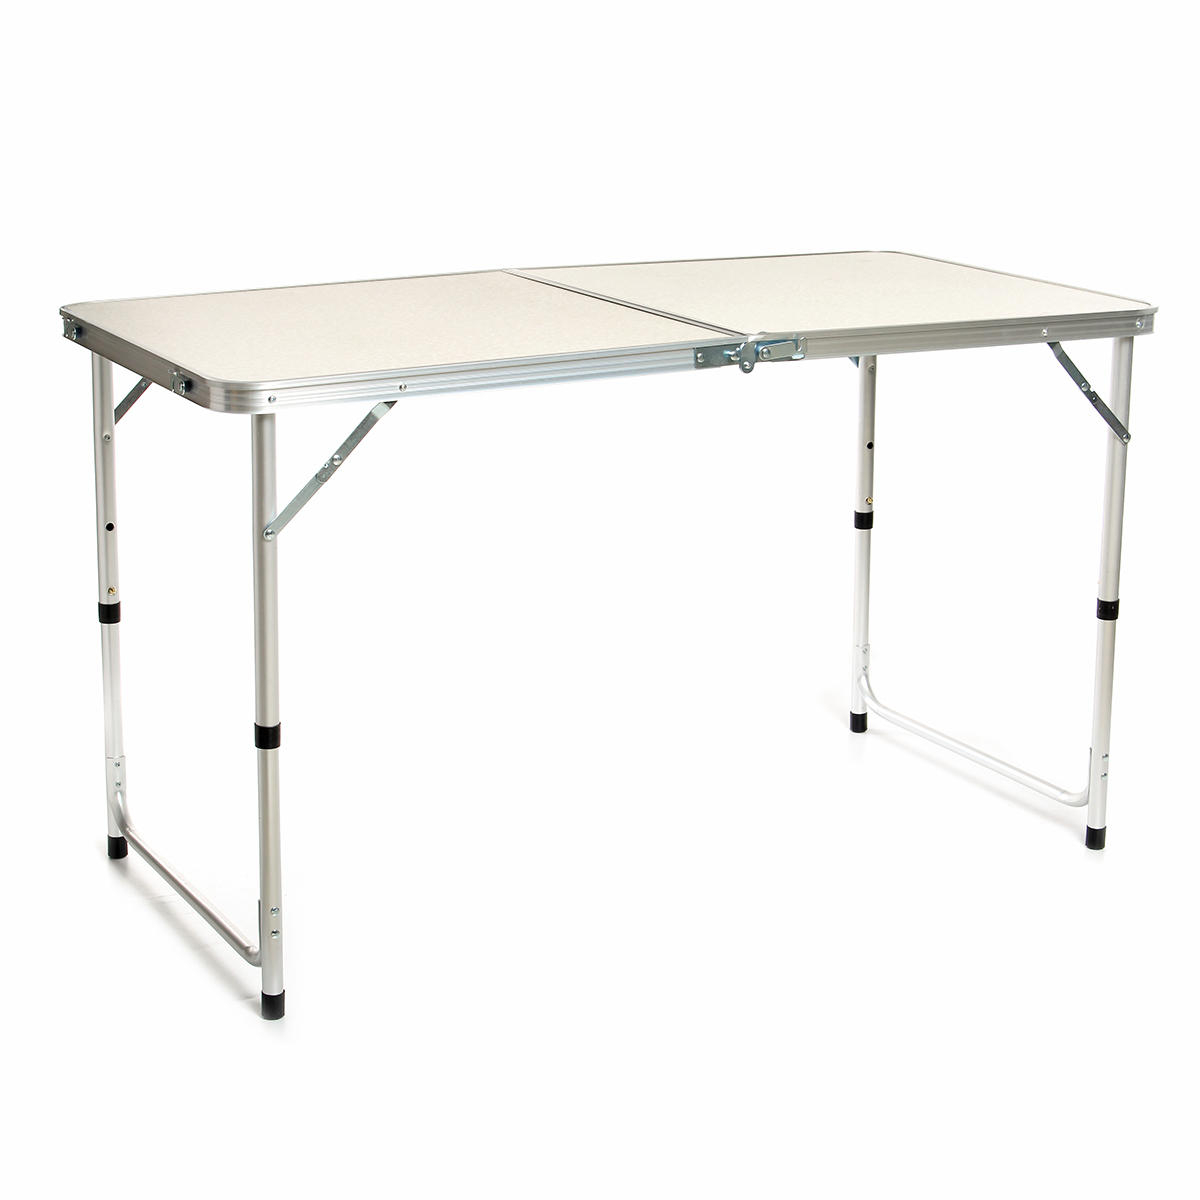 Portable Folding Table Laptop Desk Study Table Aluminum Camping Table With Carrying Handle And Adjustable Legs Table For Picnic Beach Outdoors regarding size 1200 X 1200